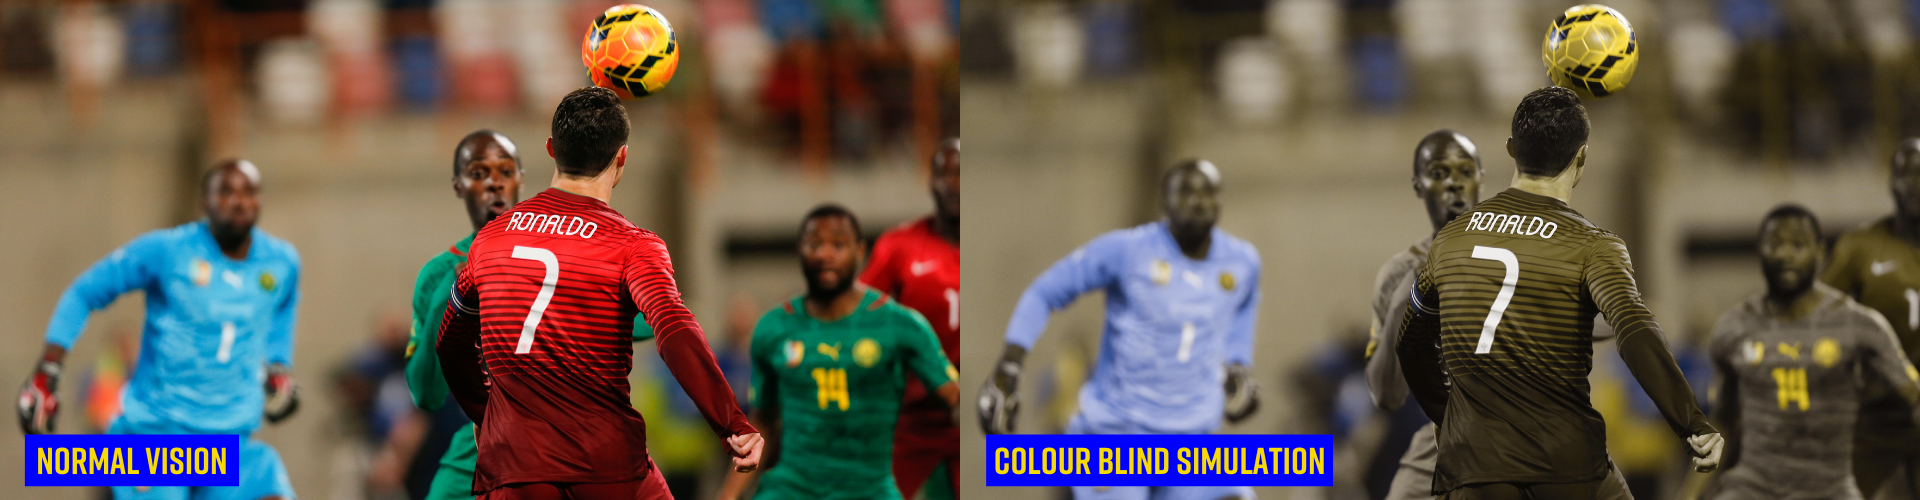 Colour Blind Awareness Day: An important platform for promoting Colour Blind Awareness in Sport header